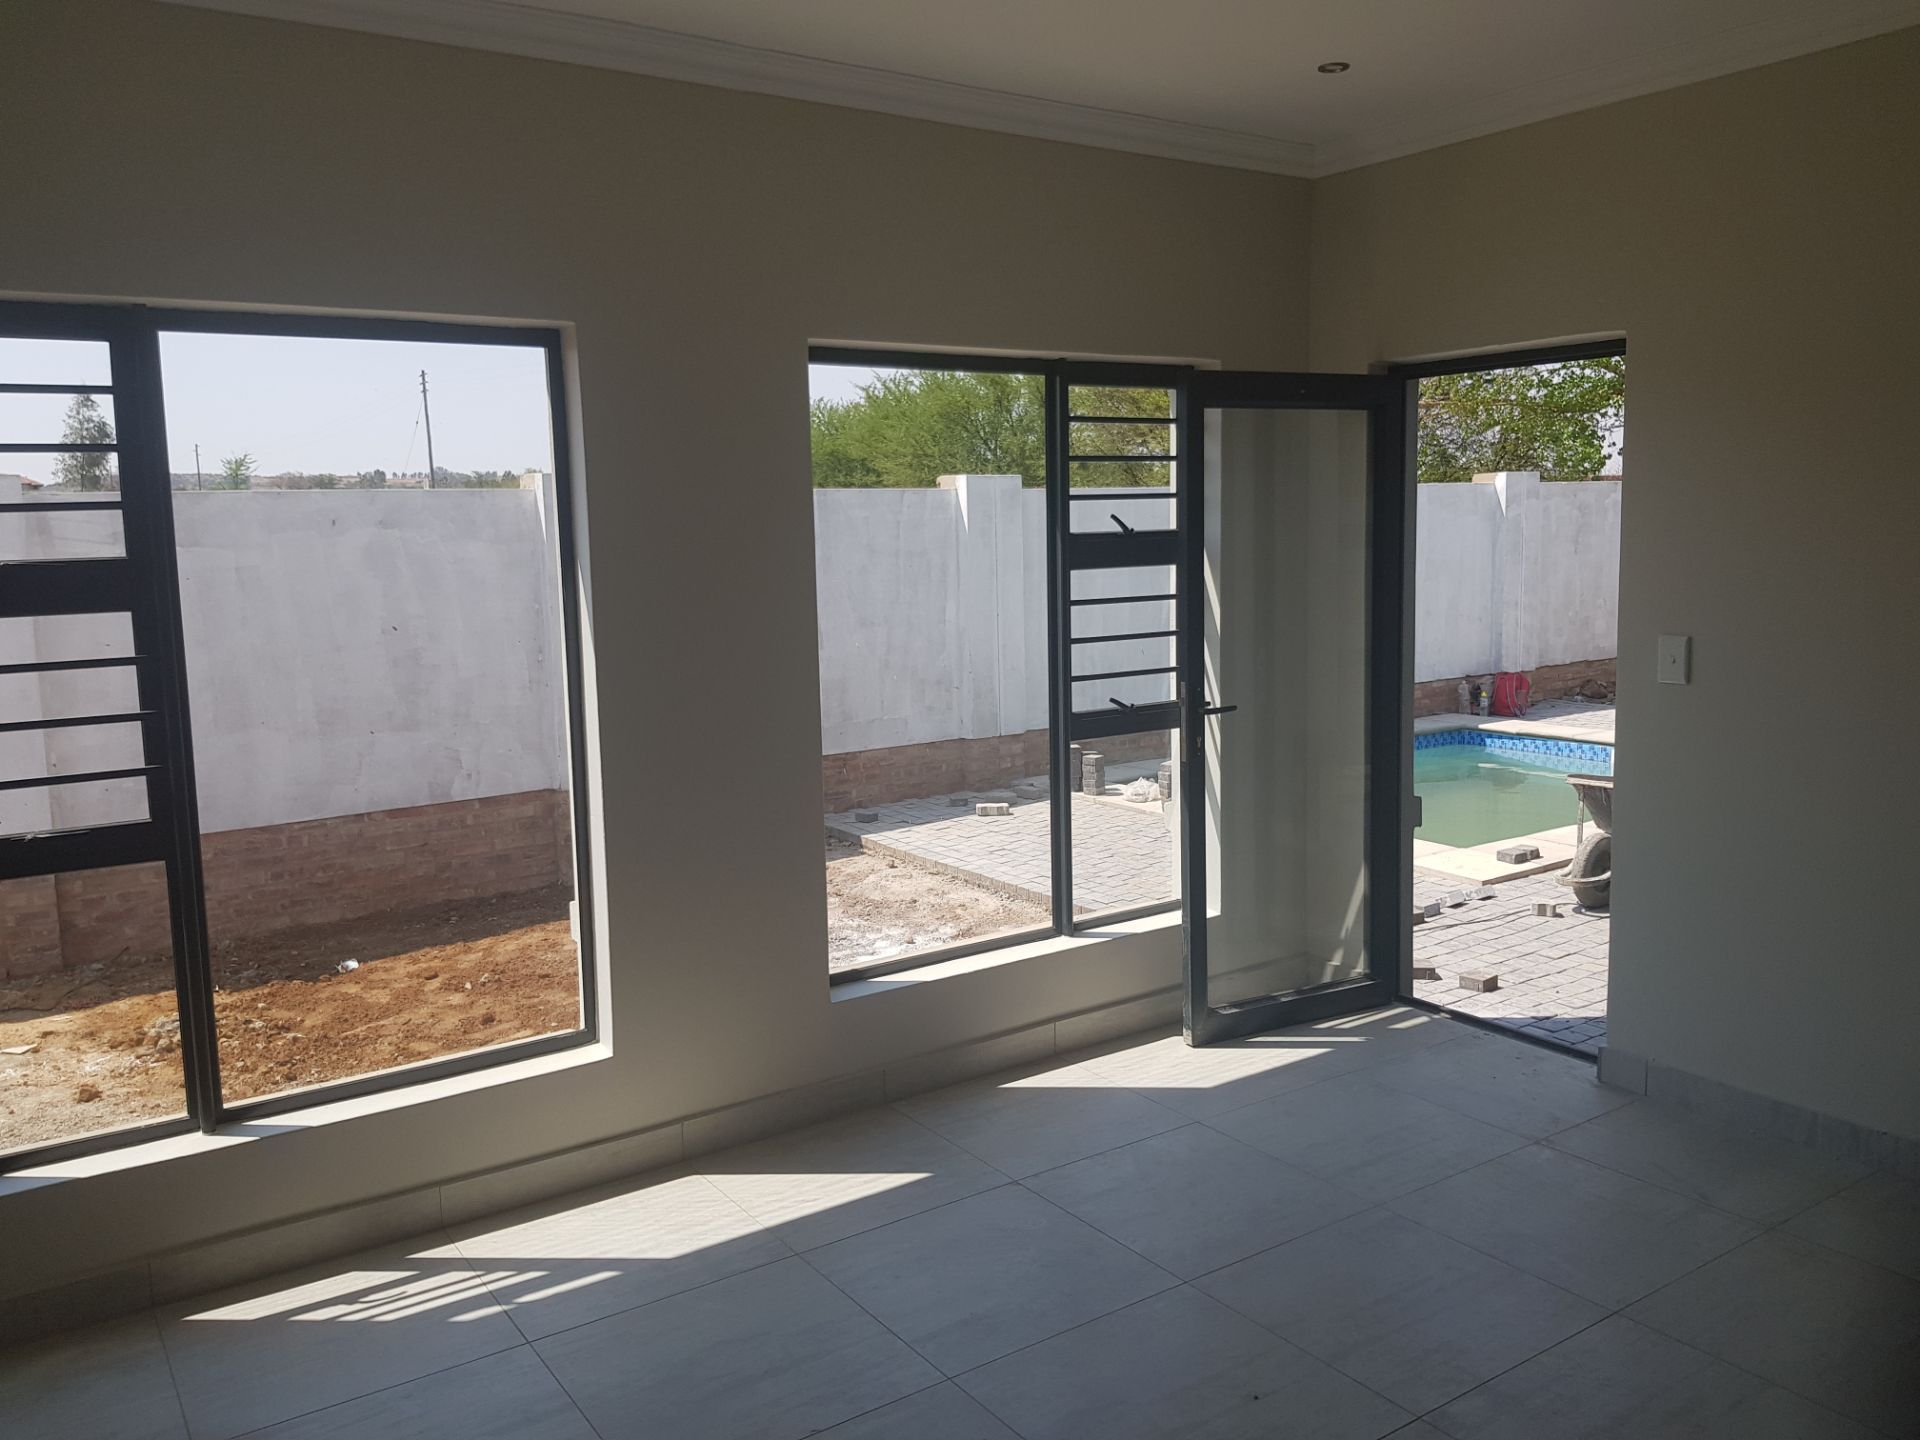 House in Lifestyle Estate - 20190920_130230.jpg